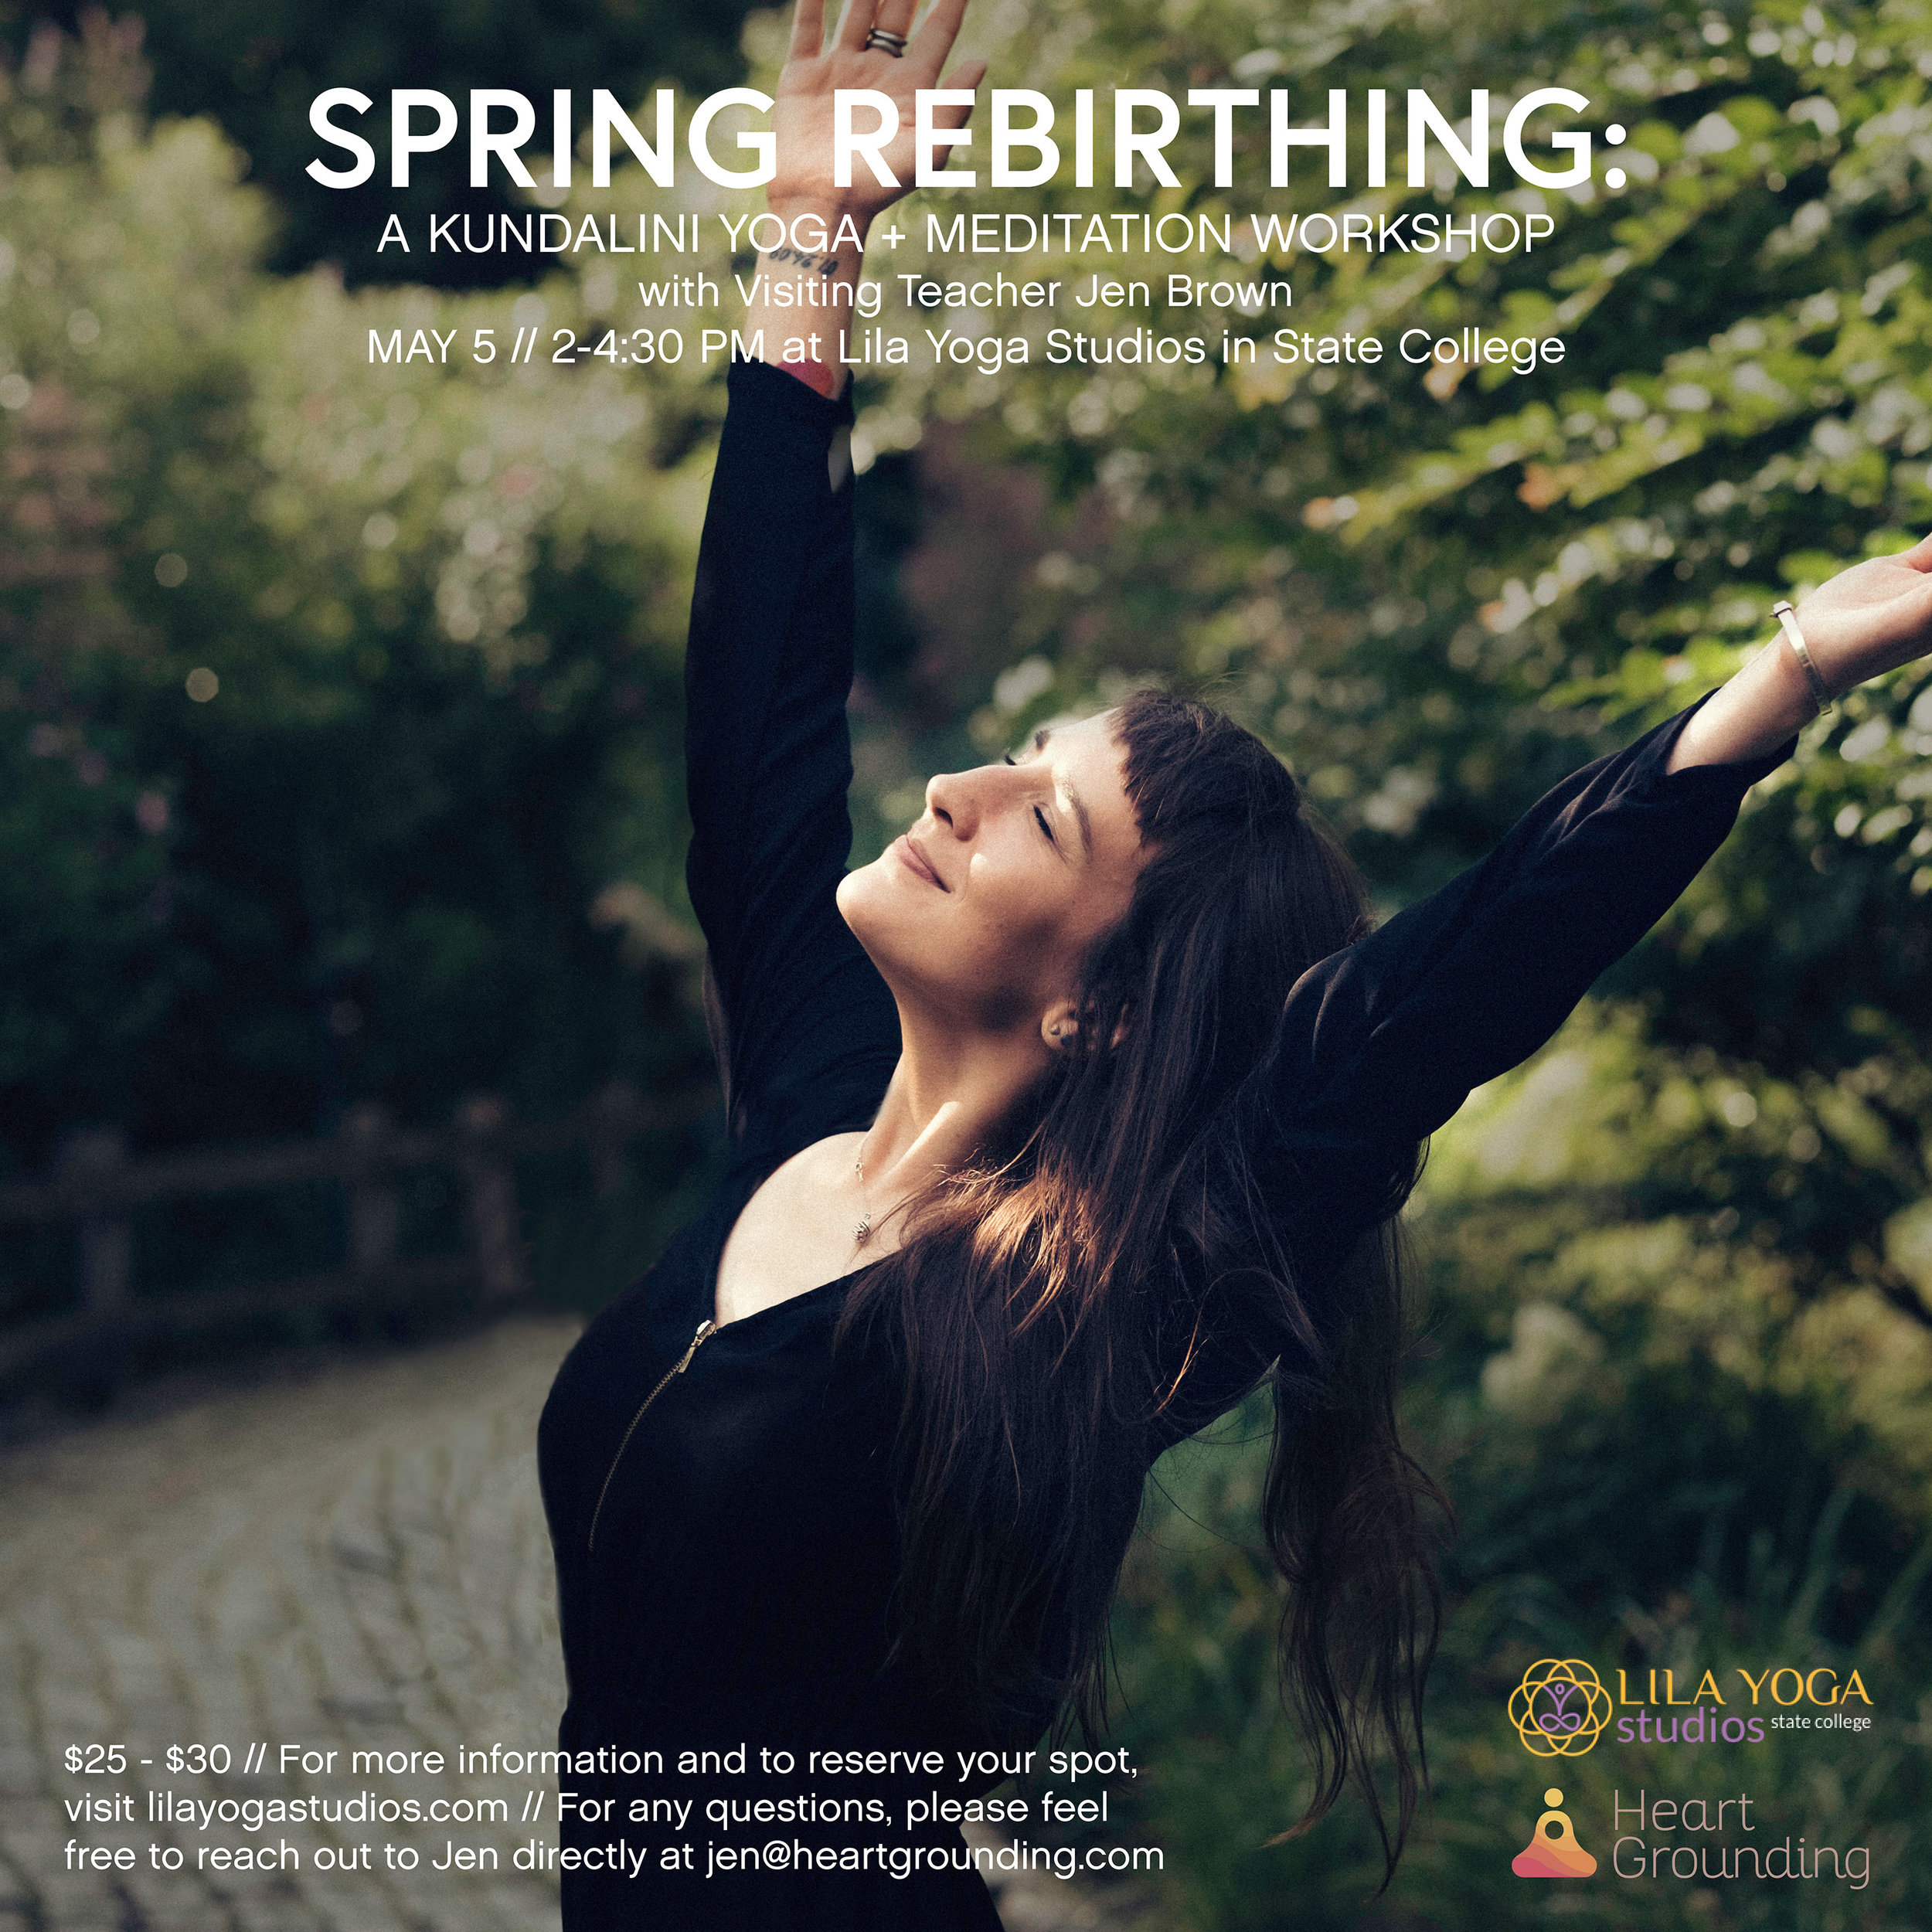 SpringRebirthingWorkshopPA2018Web.jpg